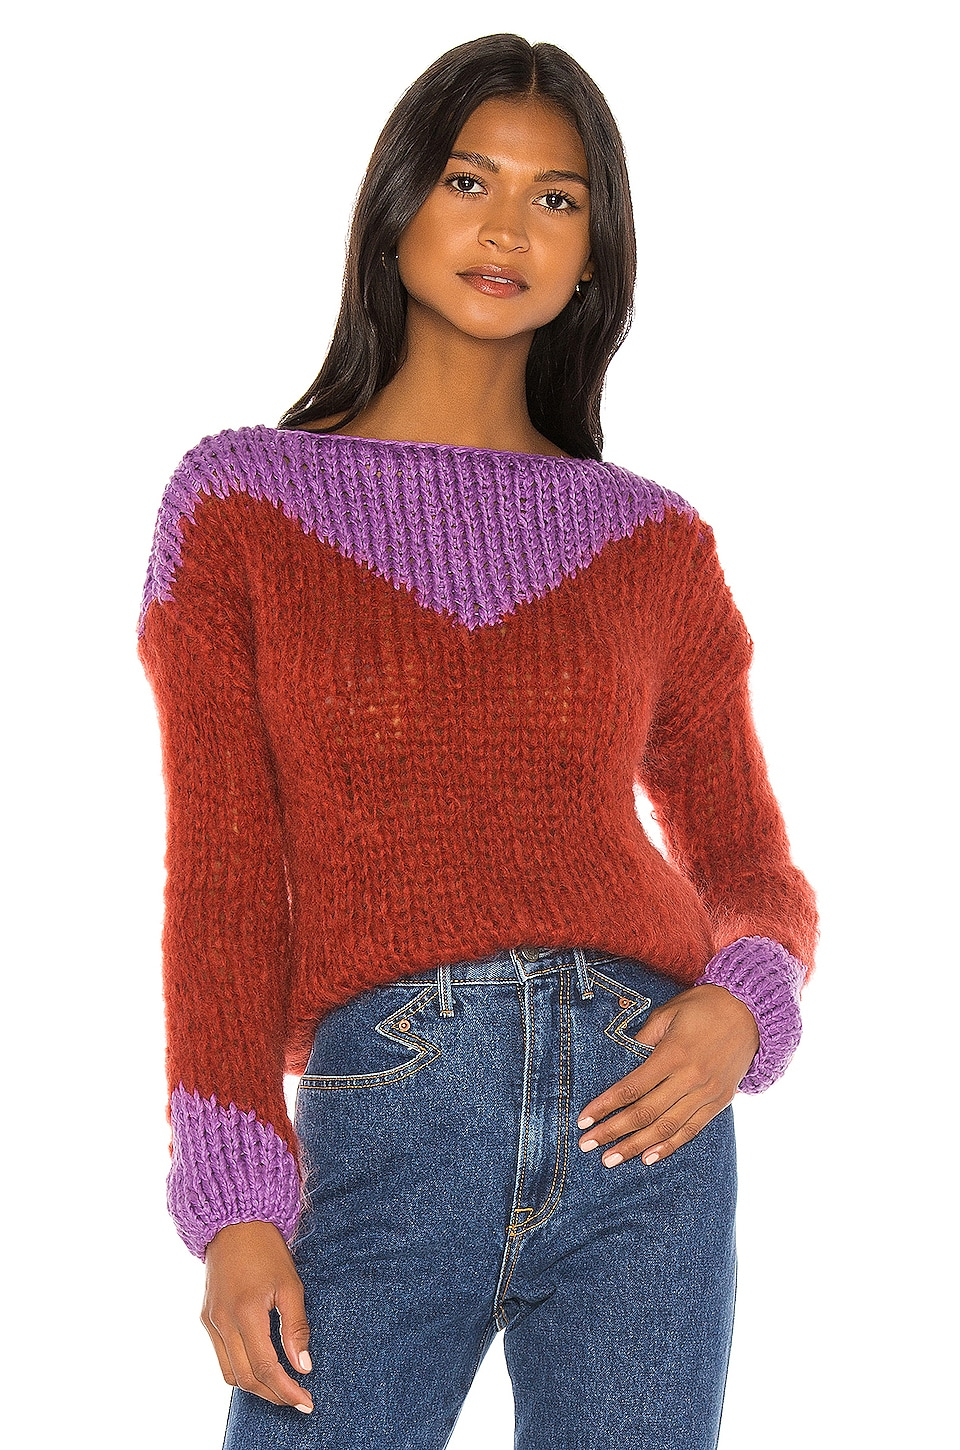 Maiami Western Sweaterblouse in Rusty Red & Violet